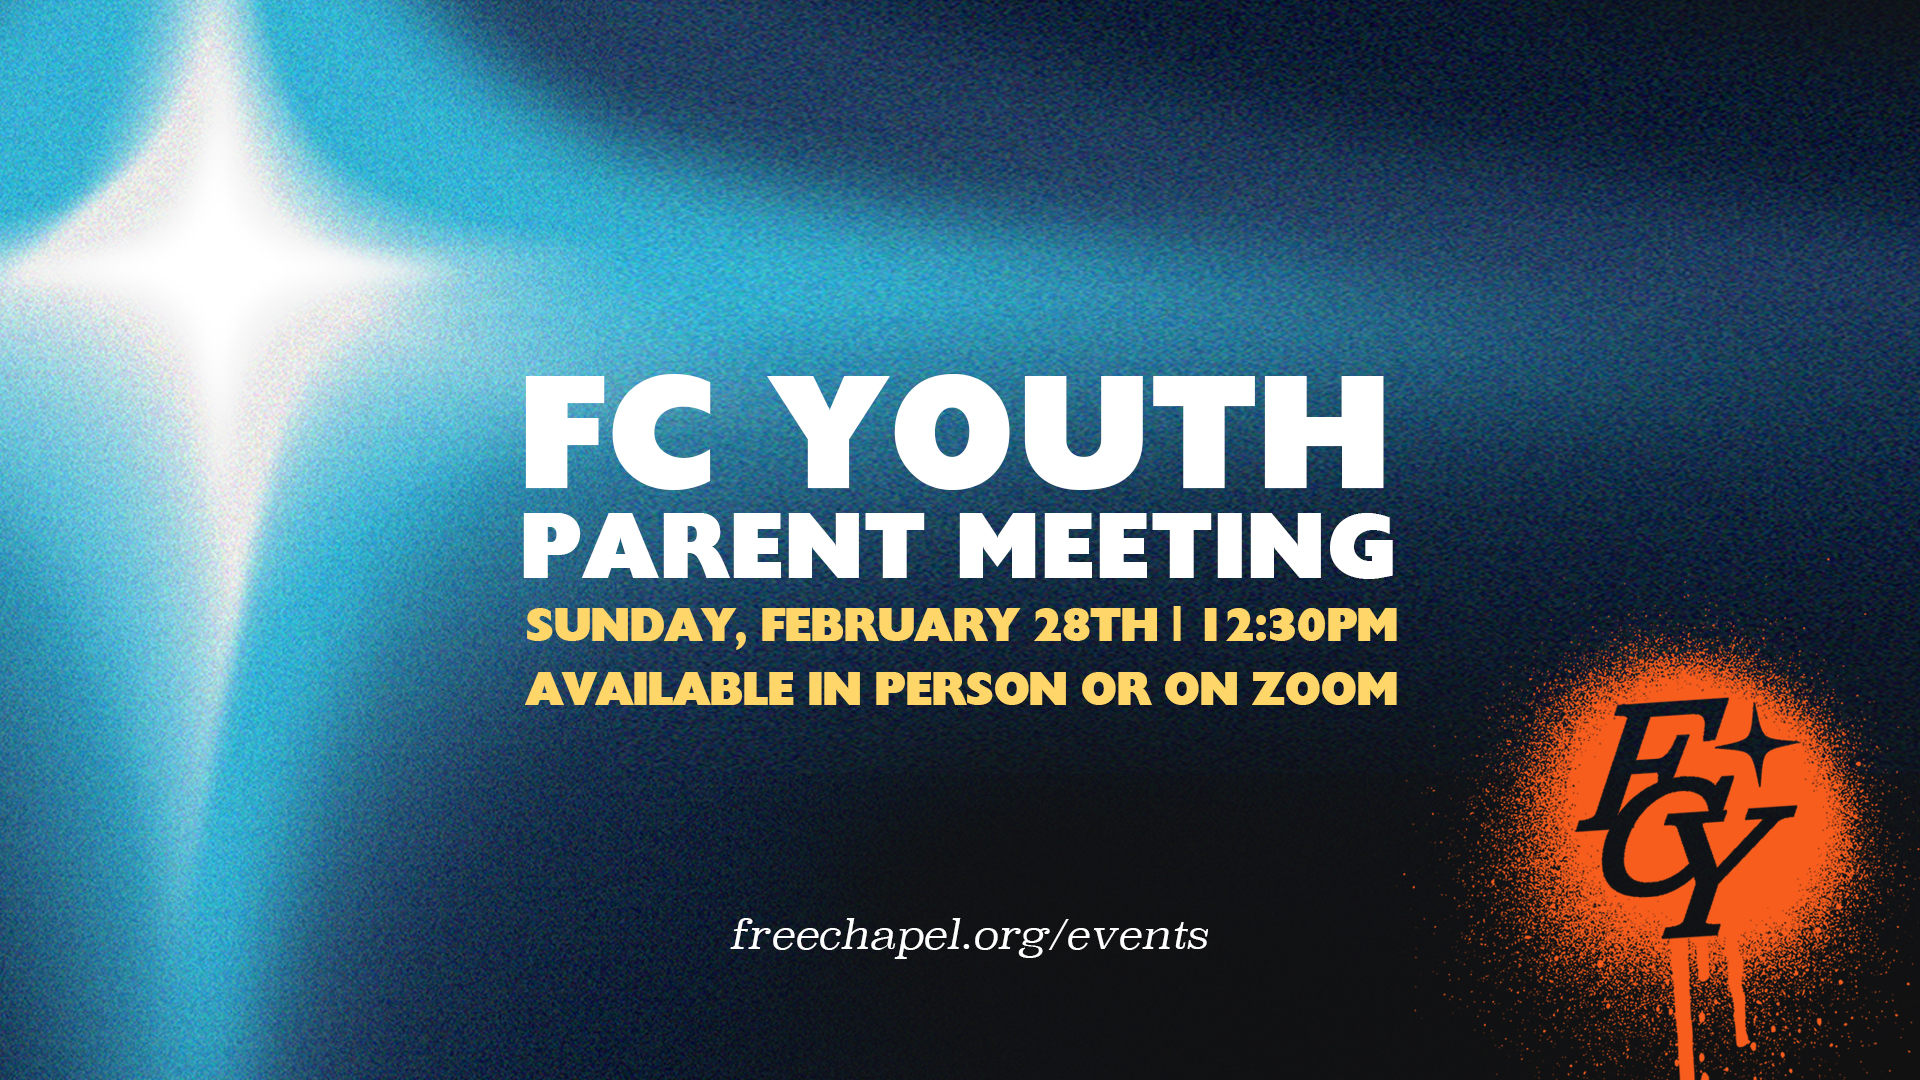 FC Youth Parent Meeting at the Cumming campus